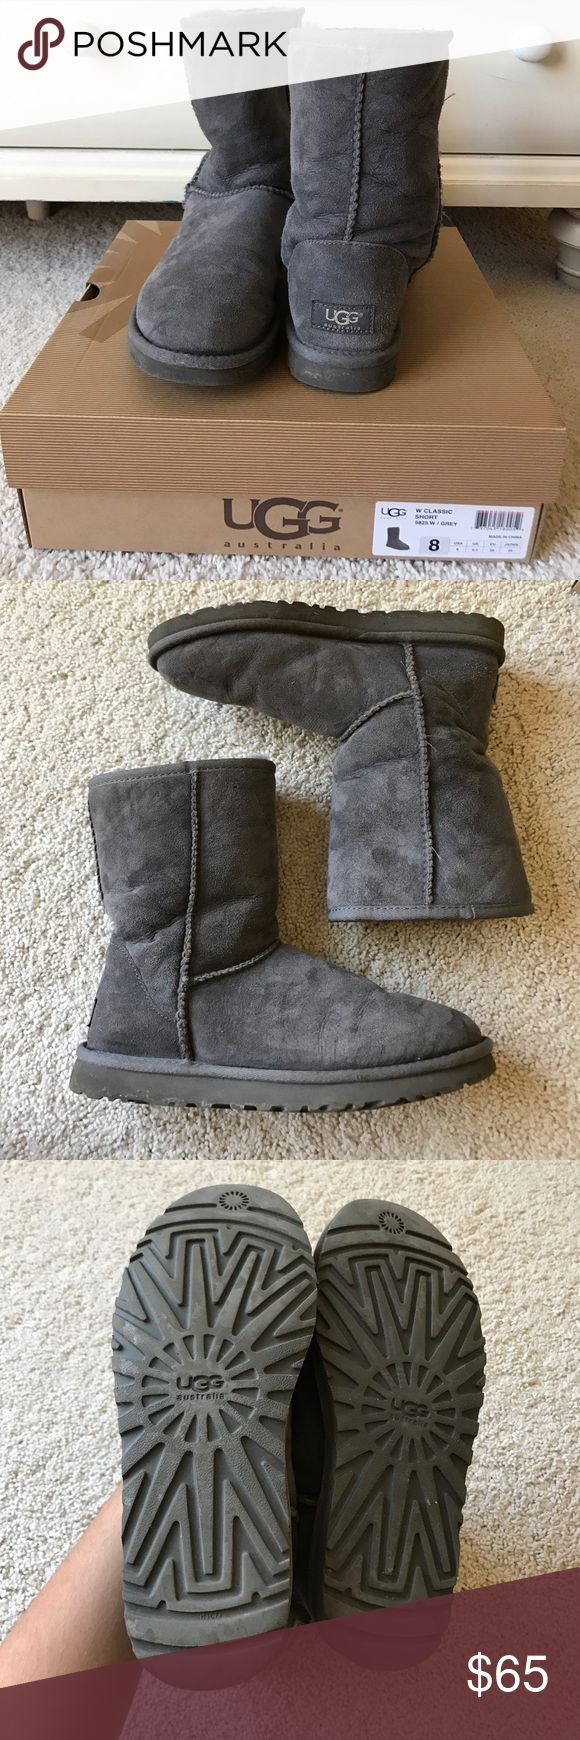 AUTHENTIC Gray Short Uggs Super comfortable and warm! These have been gently worn and are in great condition! UGG Shoes